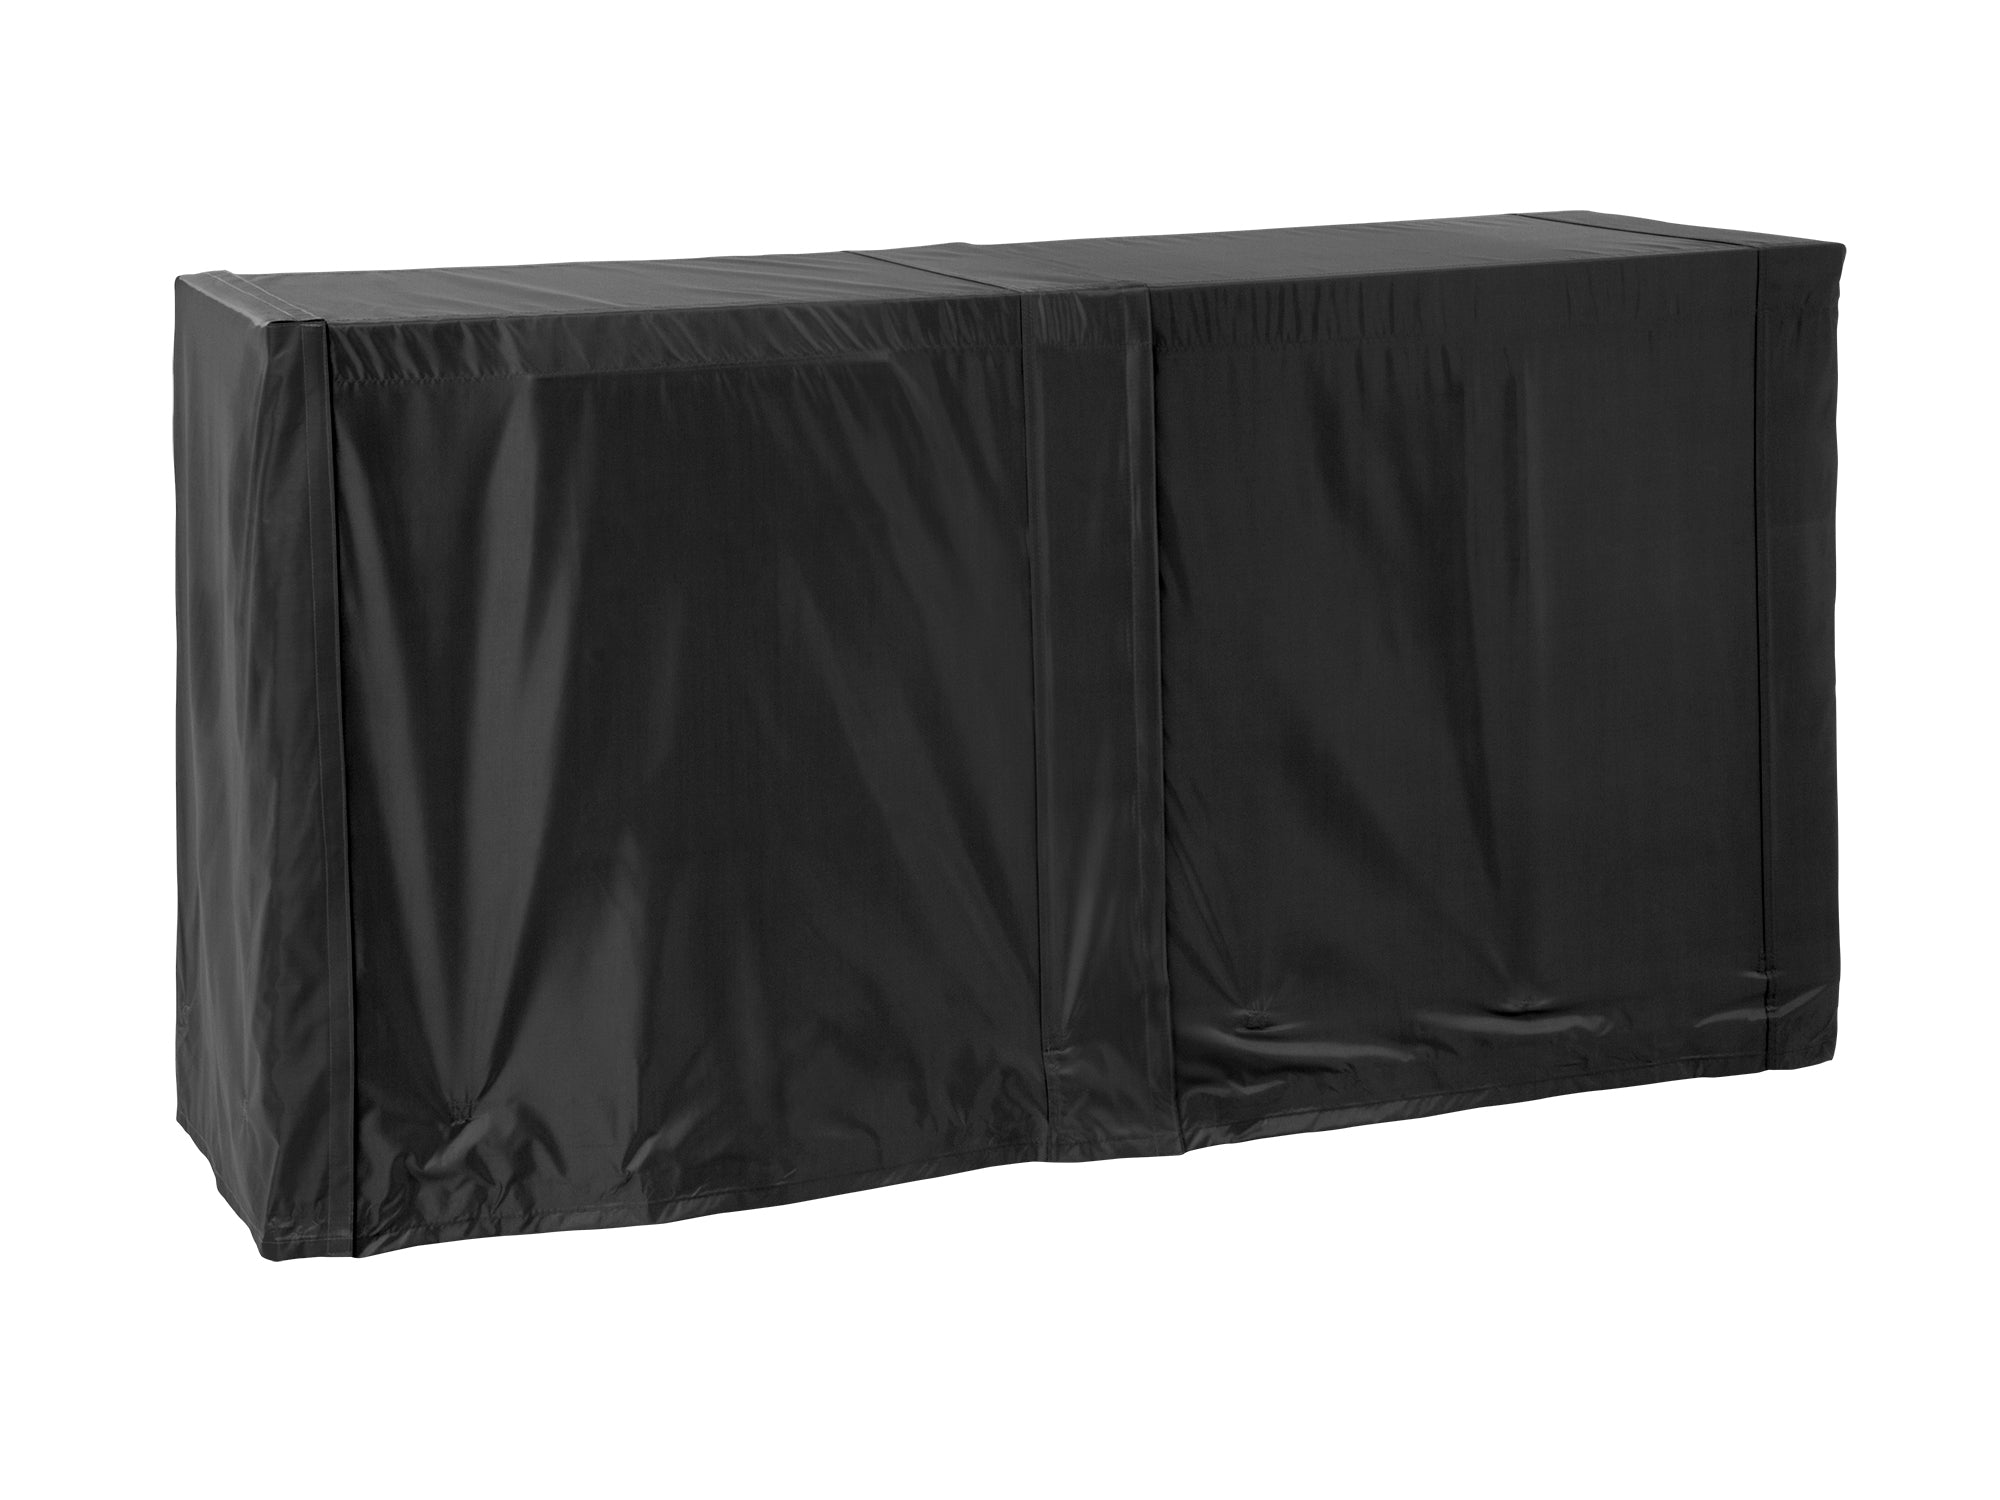 Outdoor Kitchen All-Season Cover Bundle: 96 in. Cover, Prep Table Cover, Right/Left Side Panel Covers